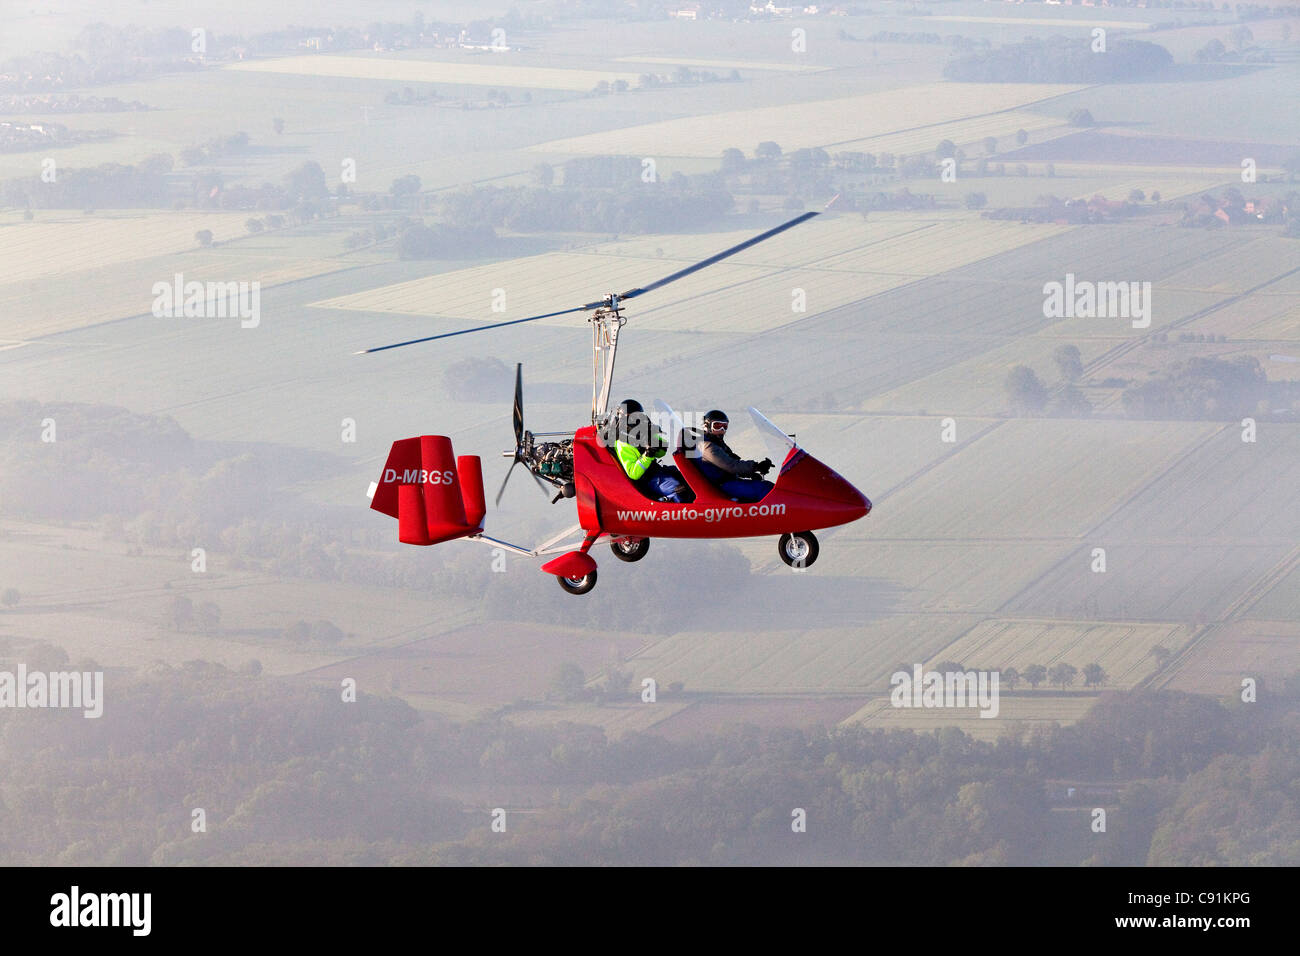 Aerial view of a two-seater autogyro, gyrocopter with cameraman, Lower Saxony, Germany - Stock Image